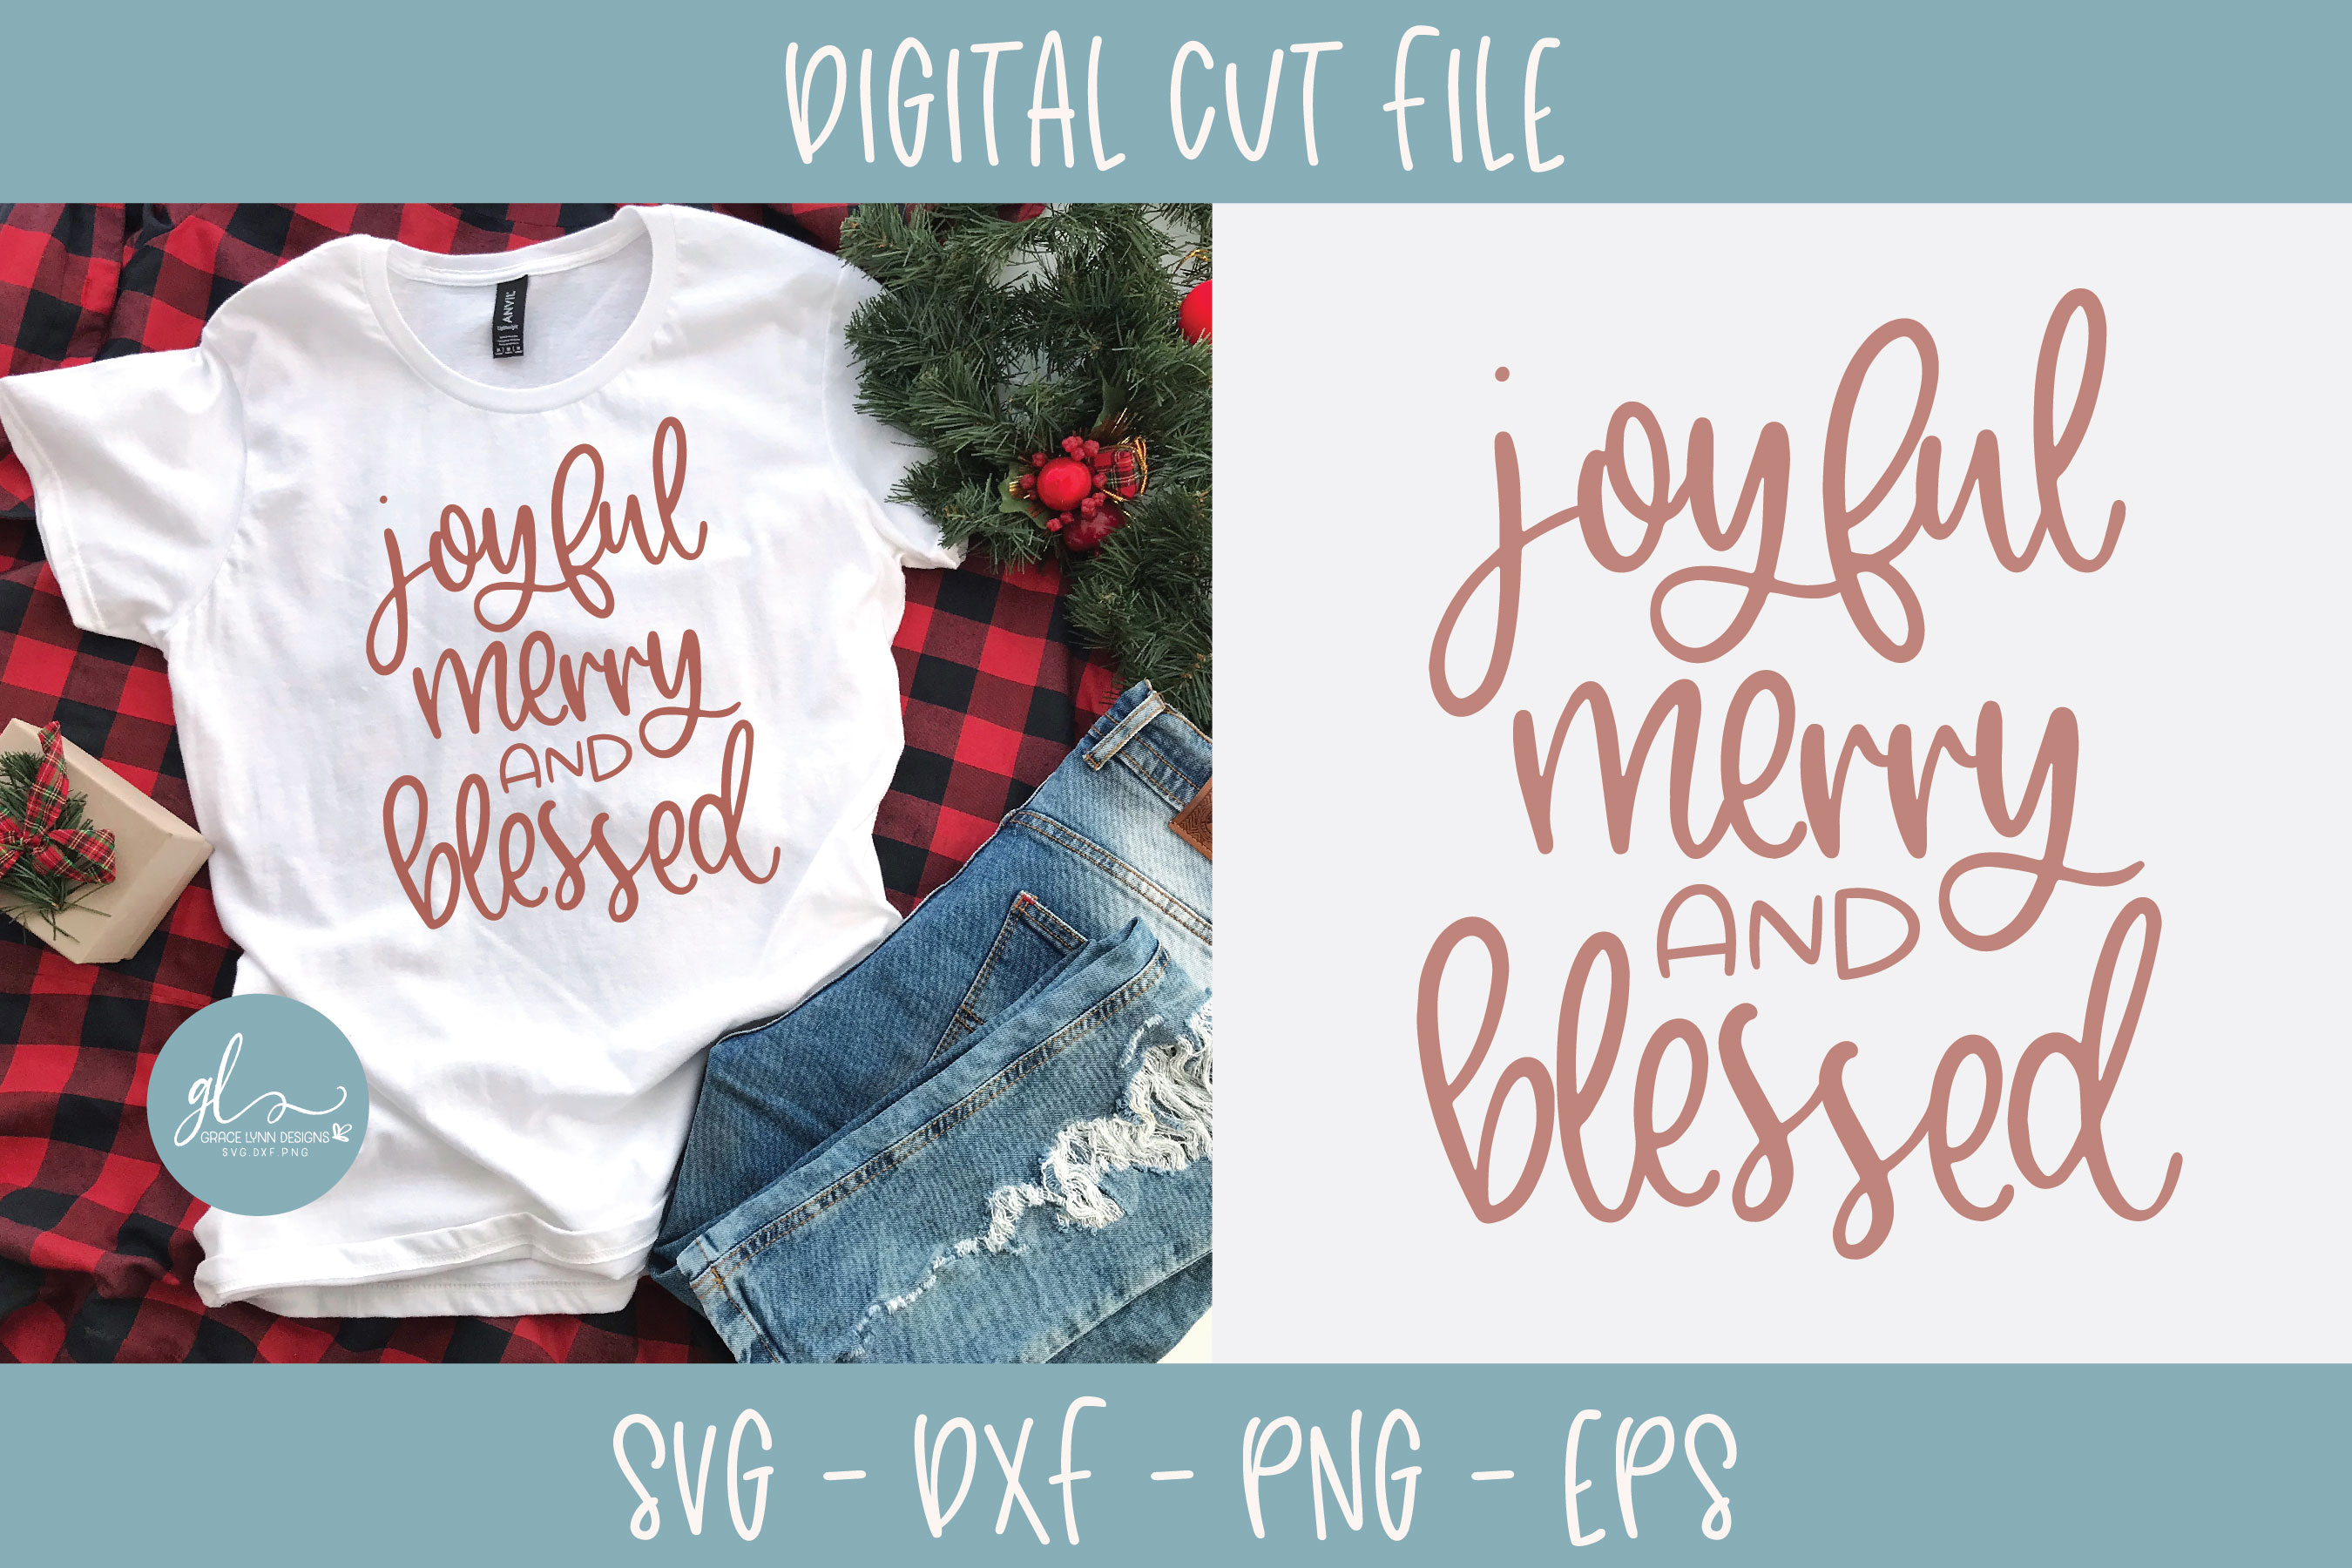 Joyful Merry And Blessed - Christmas SVG example image 2